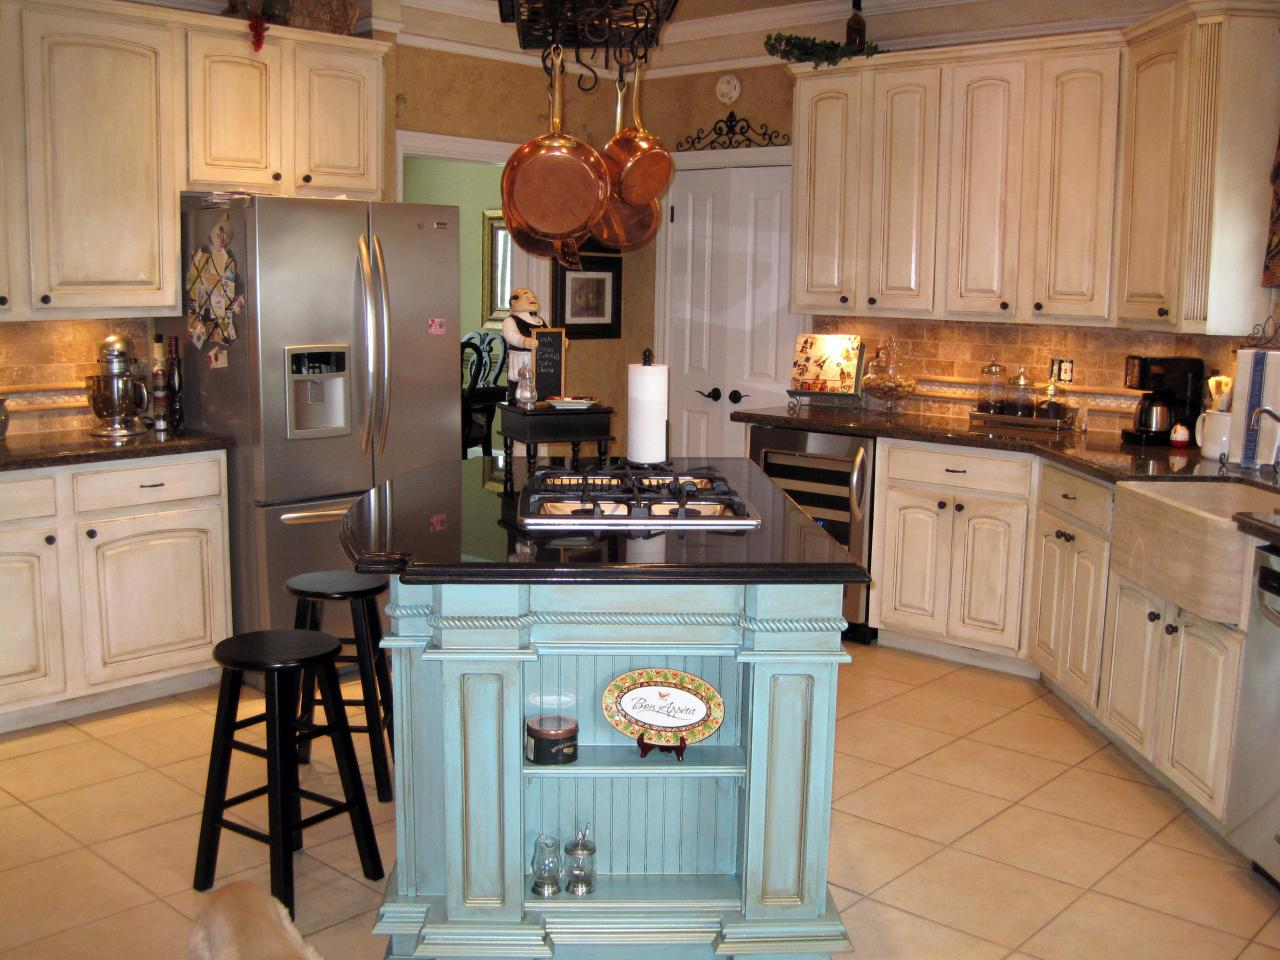 French country kitchens - Surprising Kitchen Layout With Small Blue Island In The Middle Designed In French Country Style